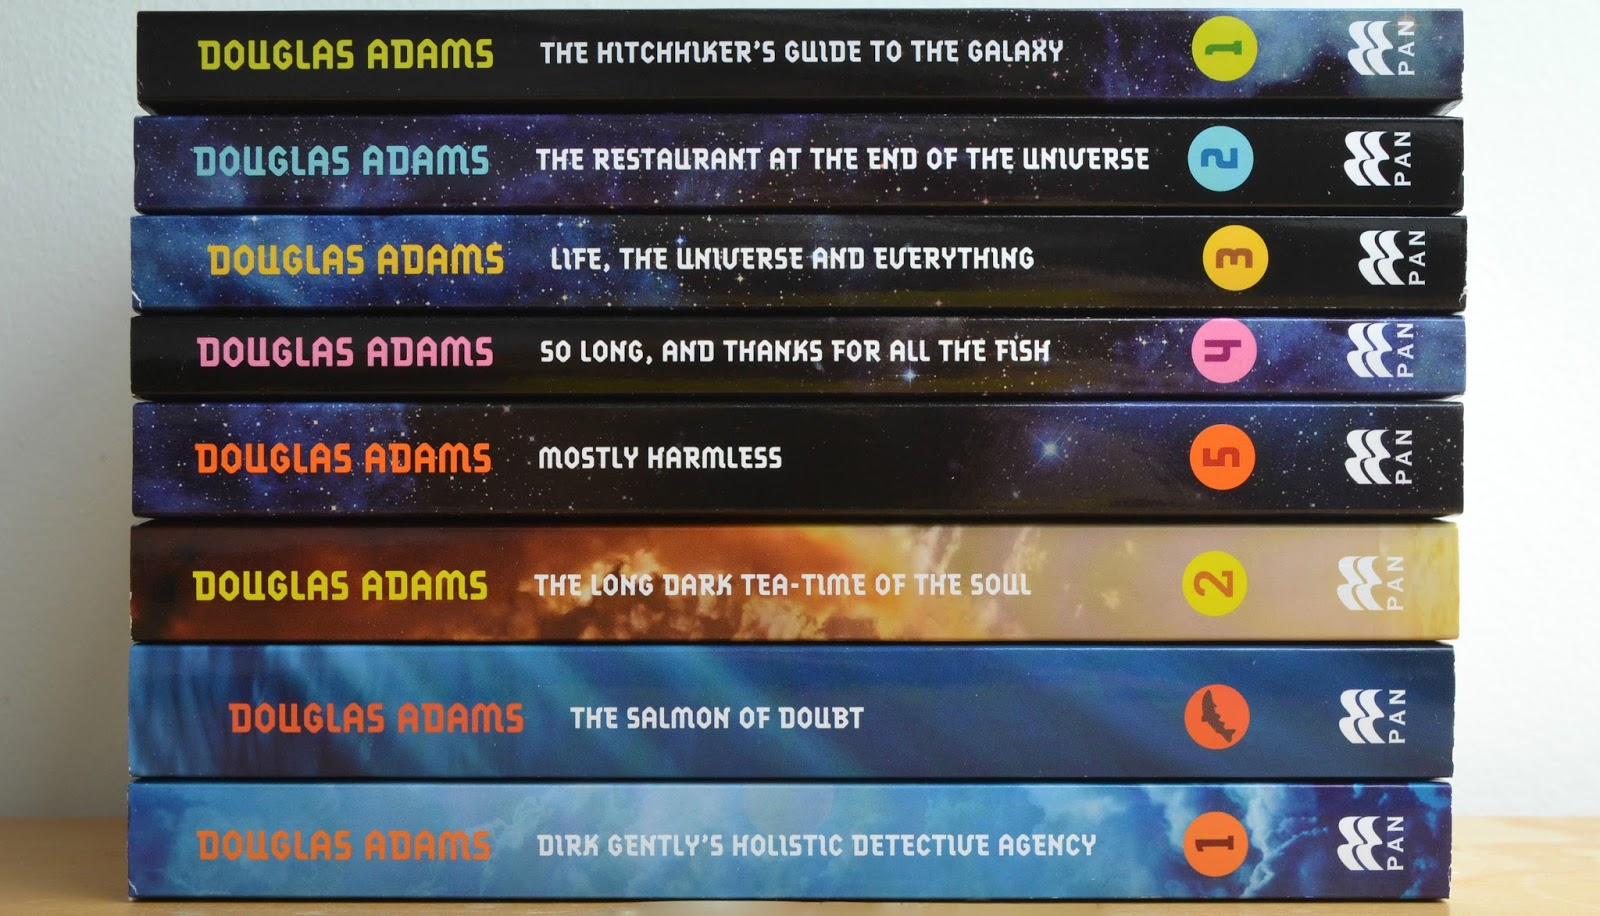 42 Of The Best Hitchhiker's Guide to the Galaxy Quotes ...